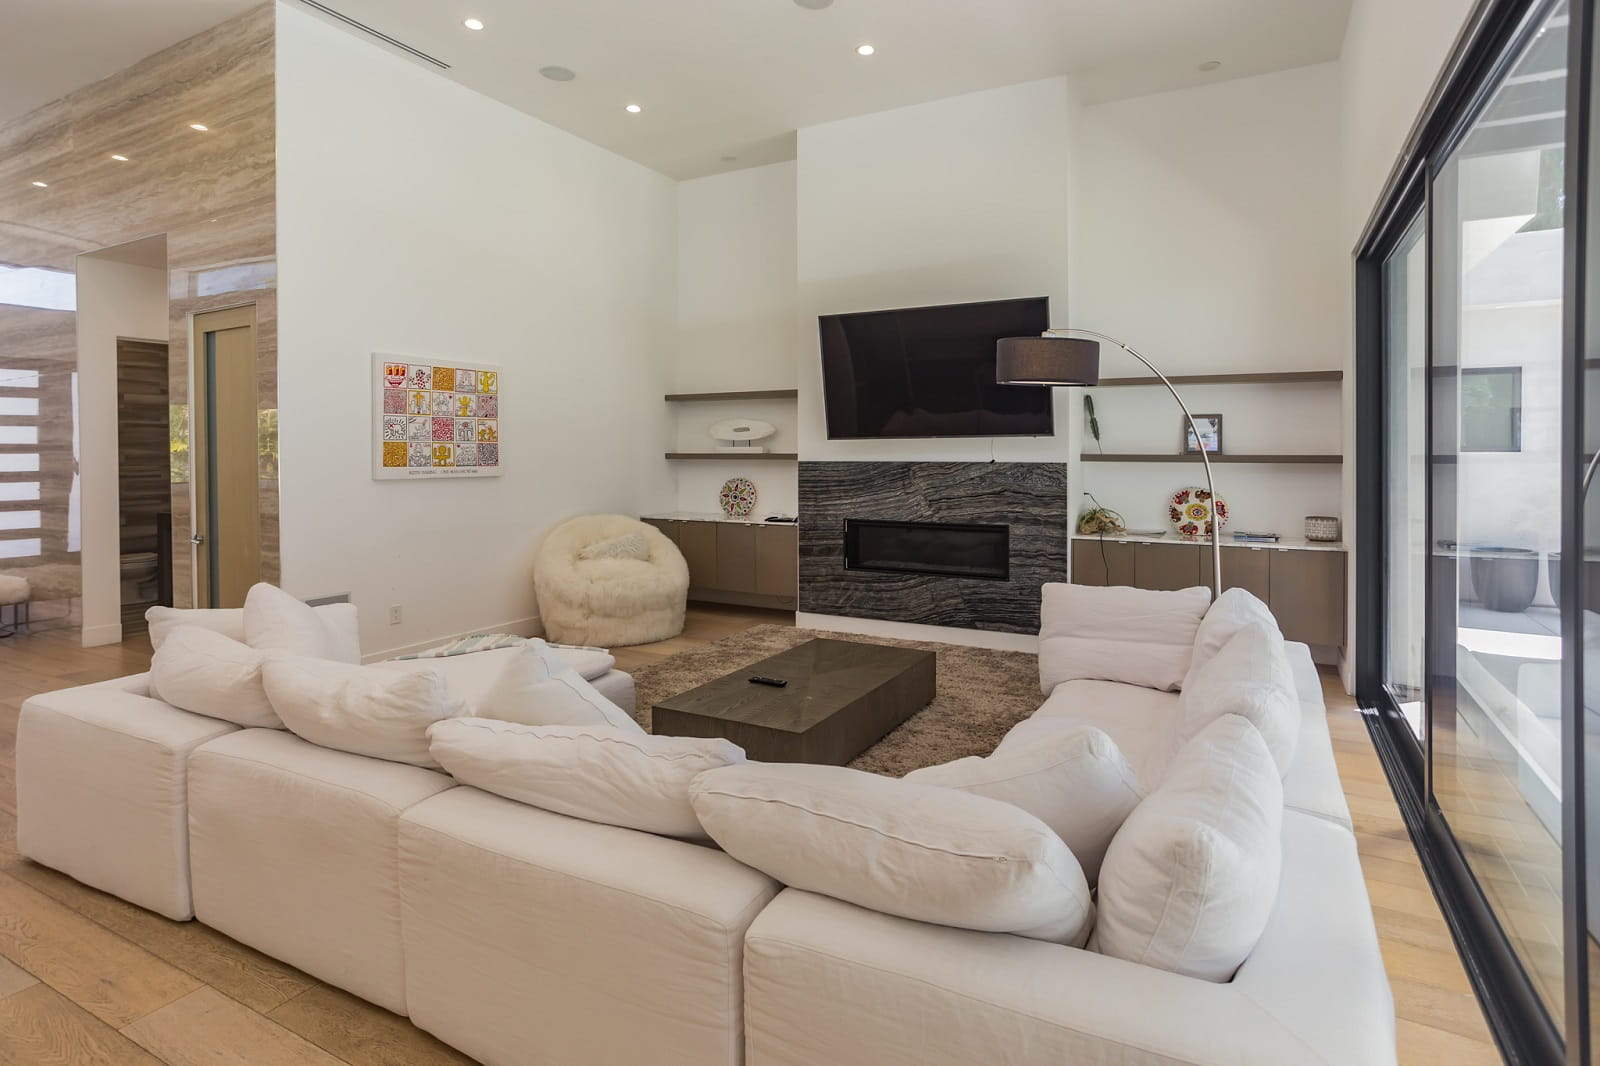 Real Estate Photography in Calabasas - CA - USA - Living Area View